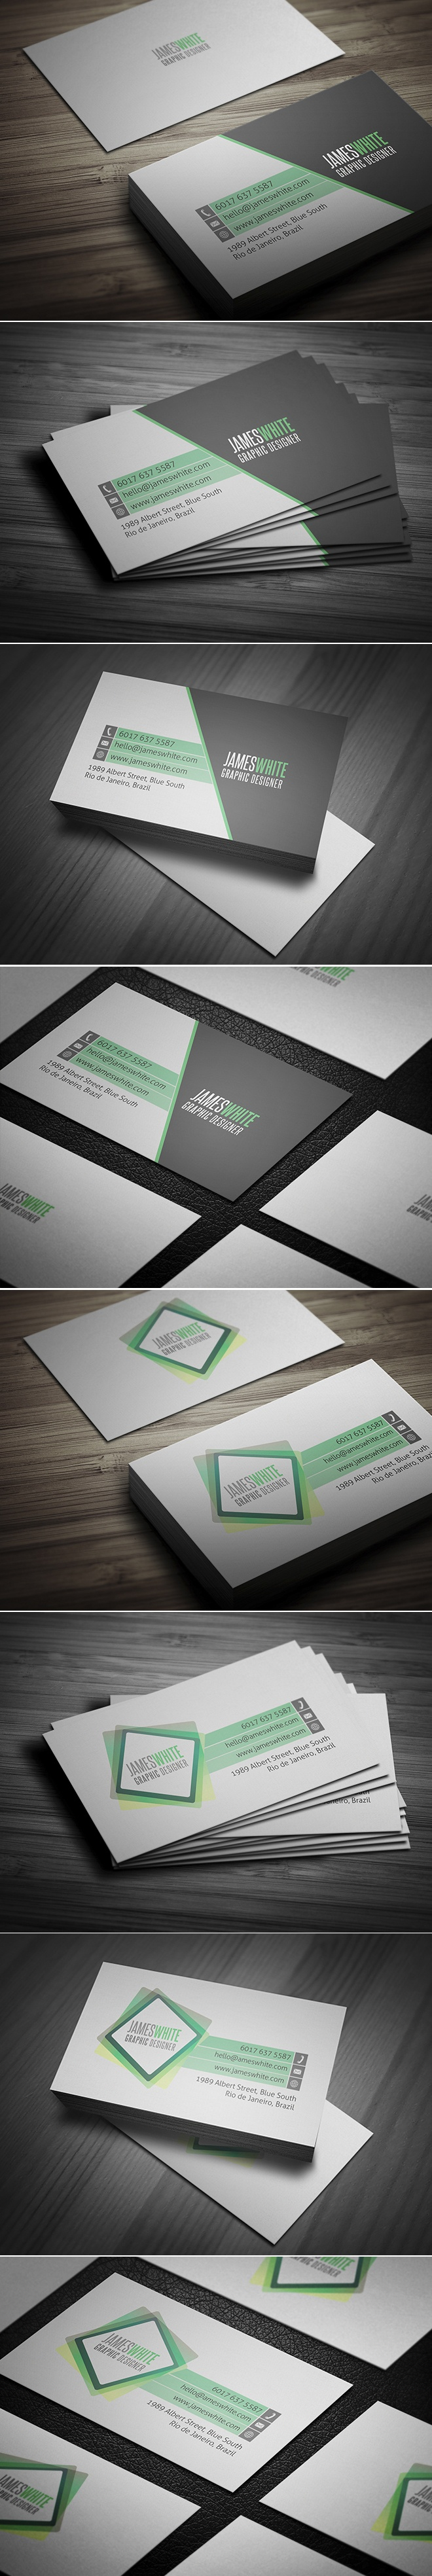 104 best business card design images on pinterest